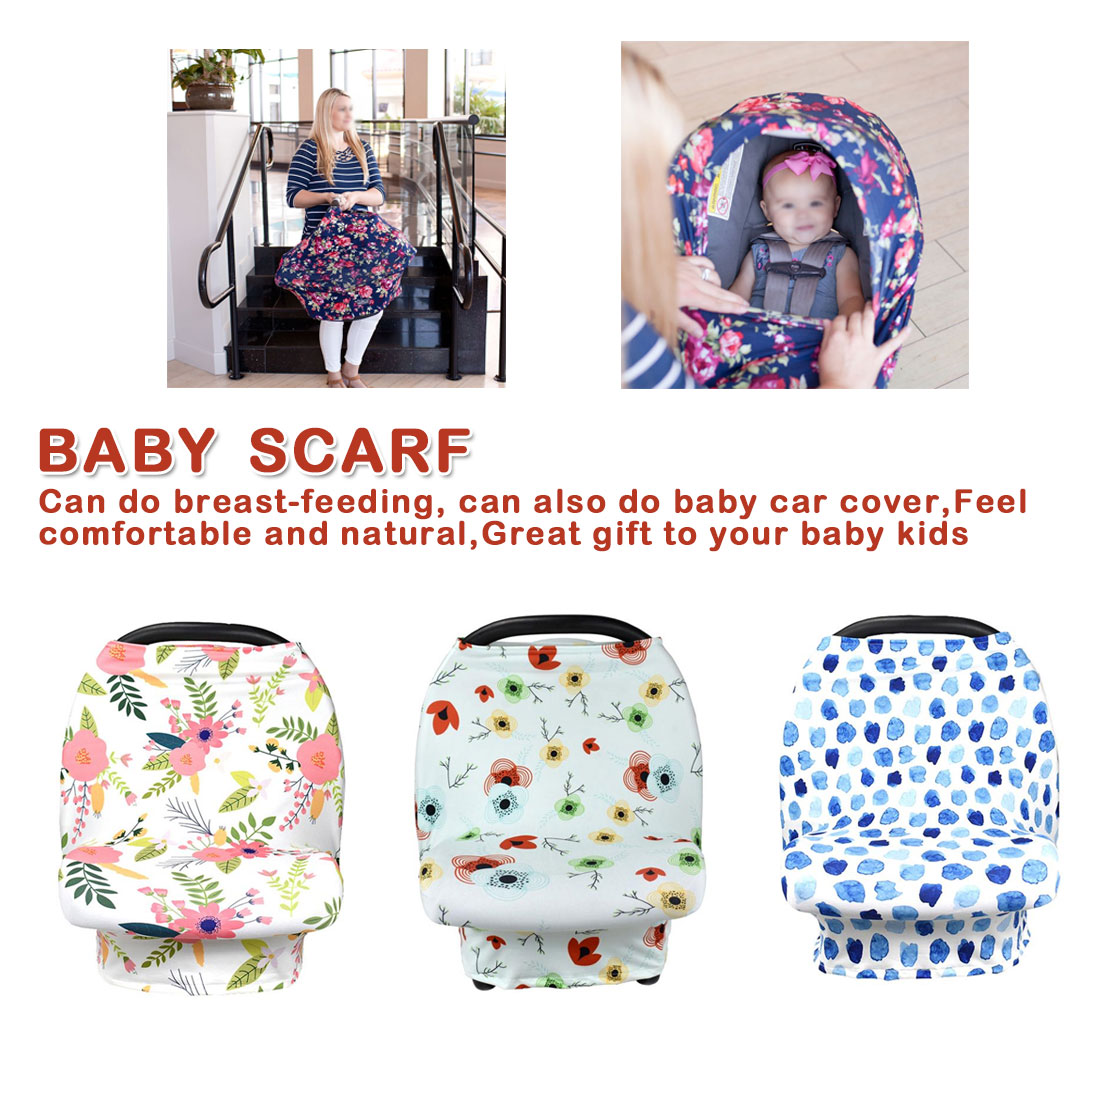 Baby Shopping Cart Cover Carseat Canopy Geometric Floral Multi Use